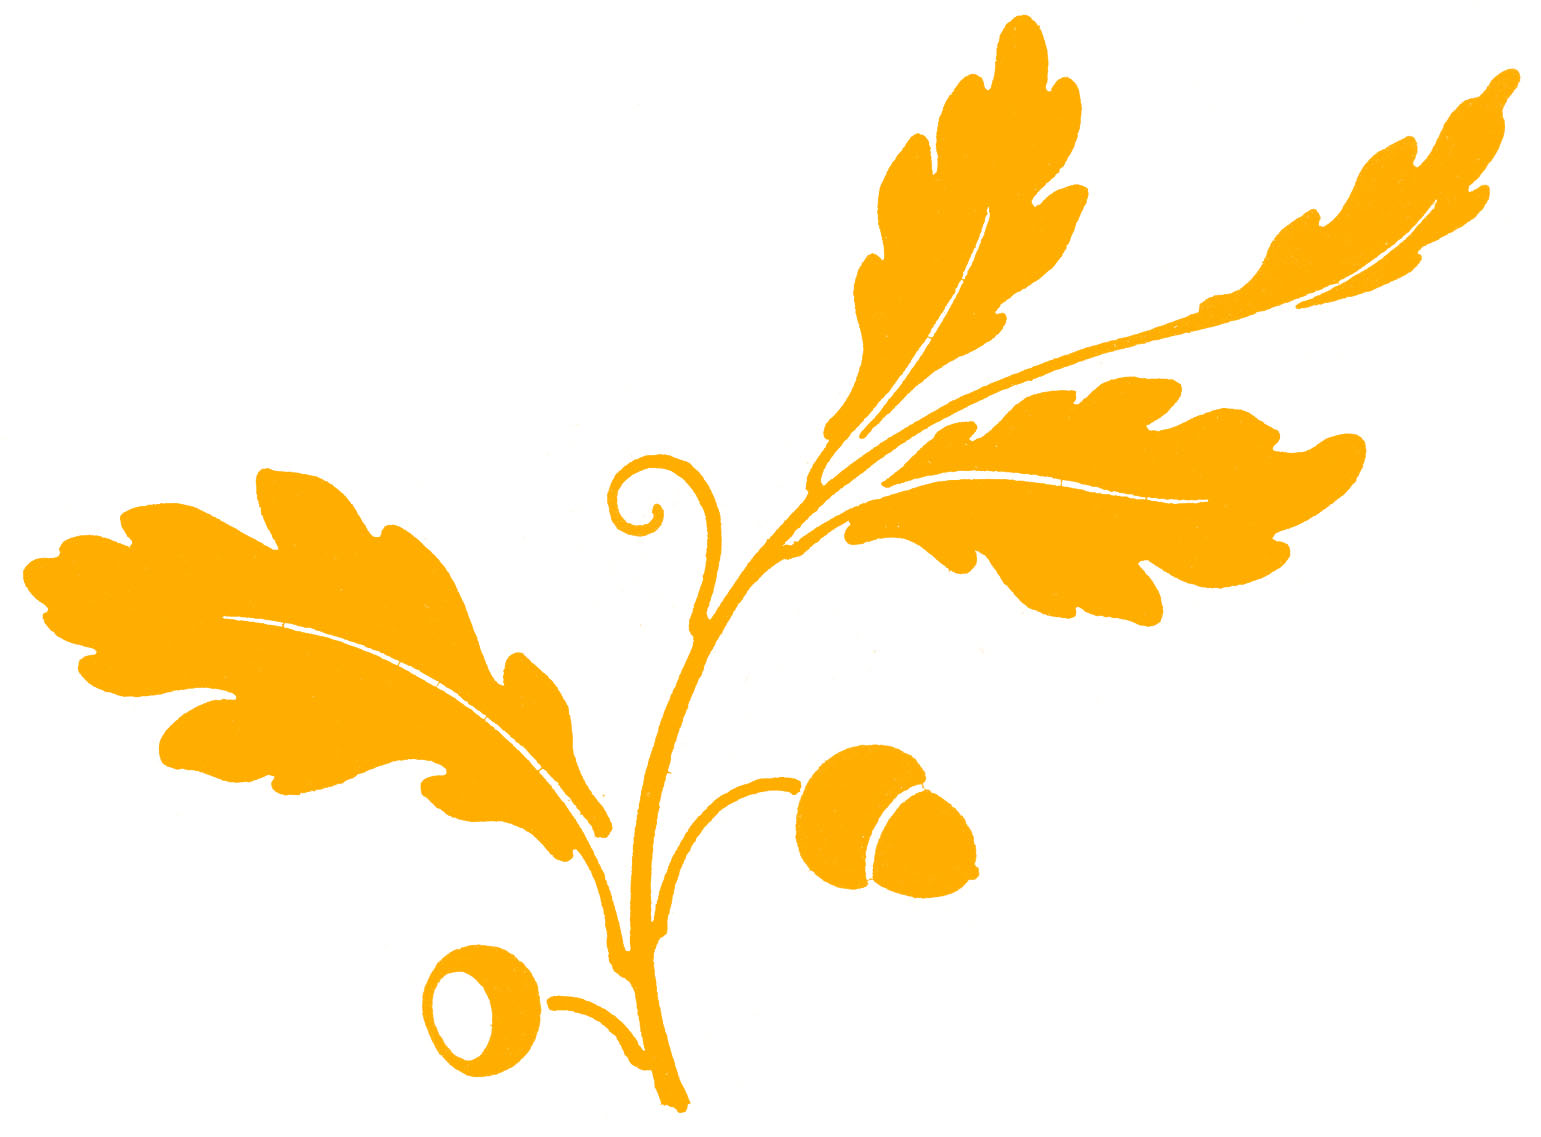 clipart leaves - photo #24